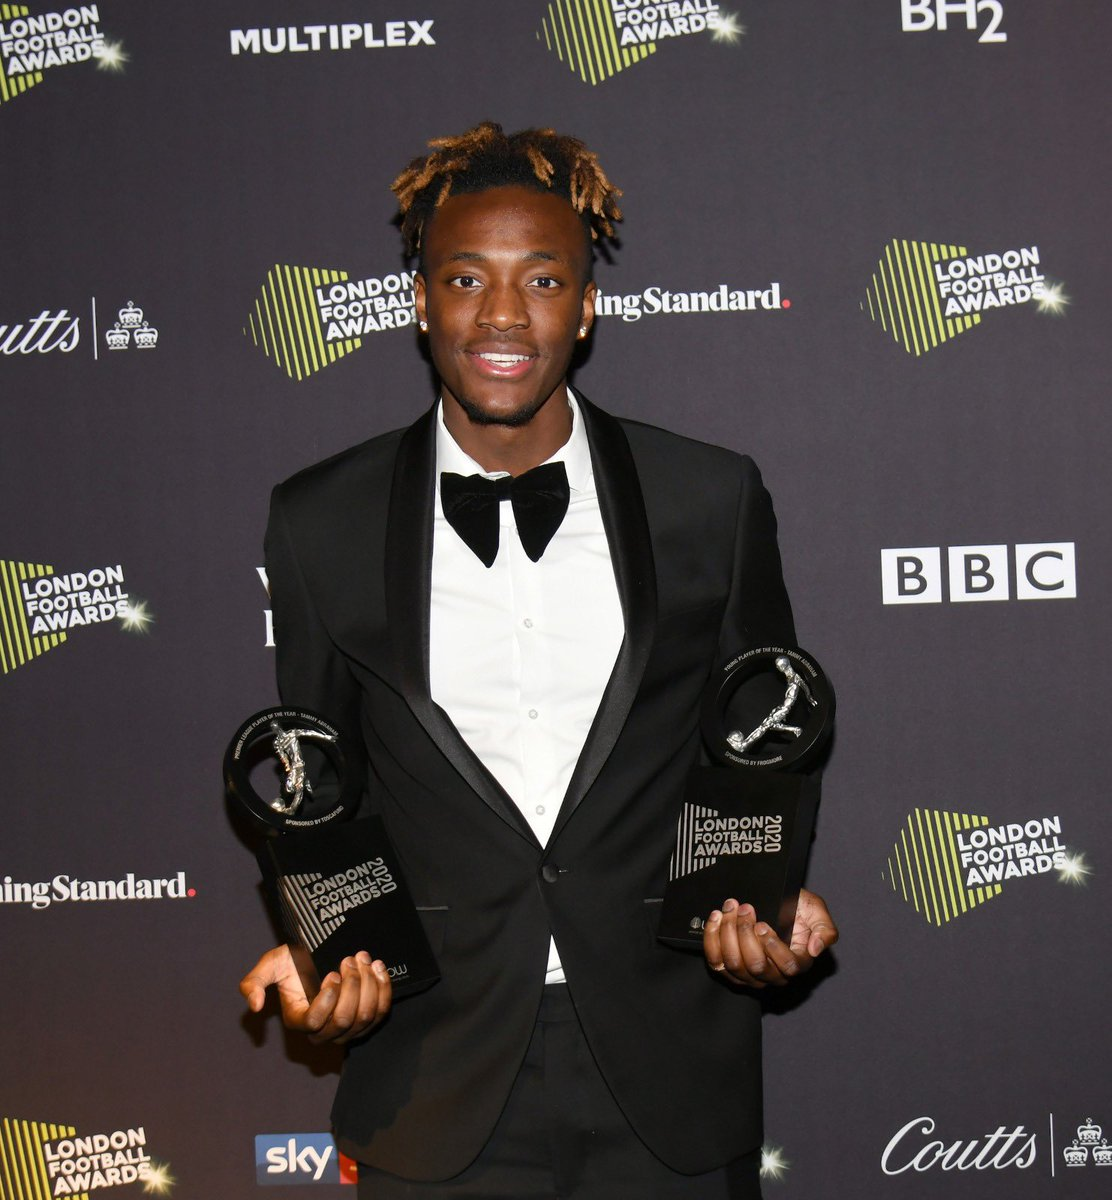 Truly honoured to be voted amongst so many greats for London Premier league player of the year & Young player of the year 🙌🏾🏆 just the beginning, the hard work continues 🙏🏾